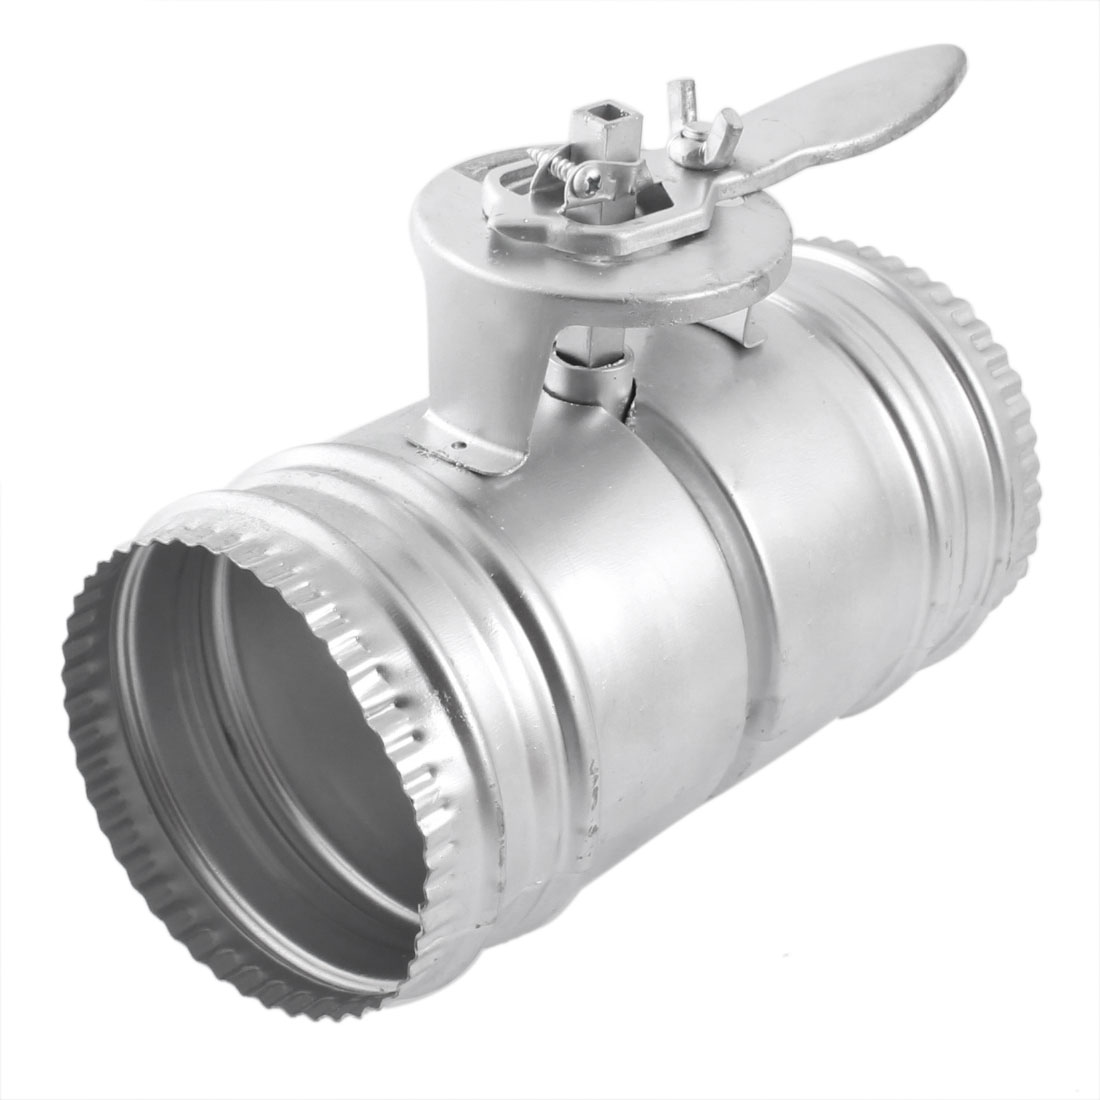 Silver Tone Metal Air Flow Regulated Control Valve for 100mm Dia Round Ducting